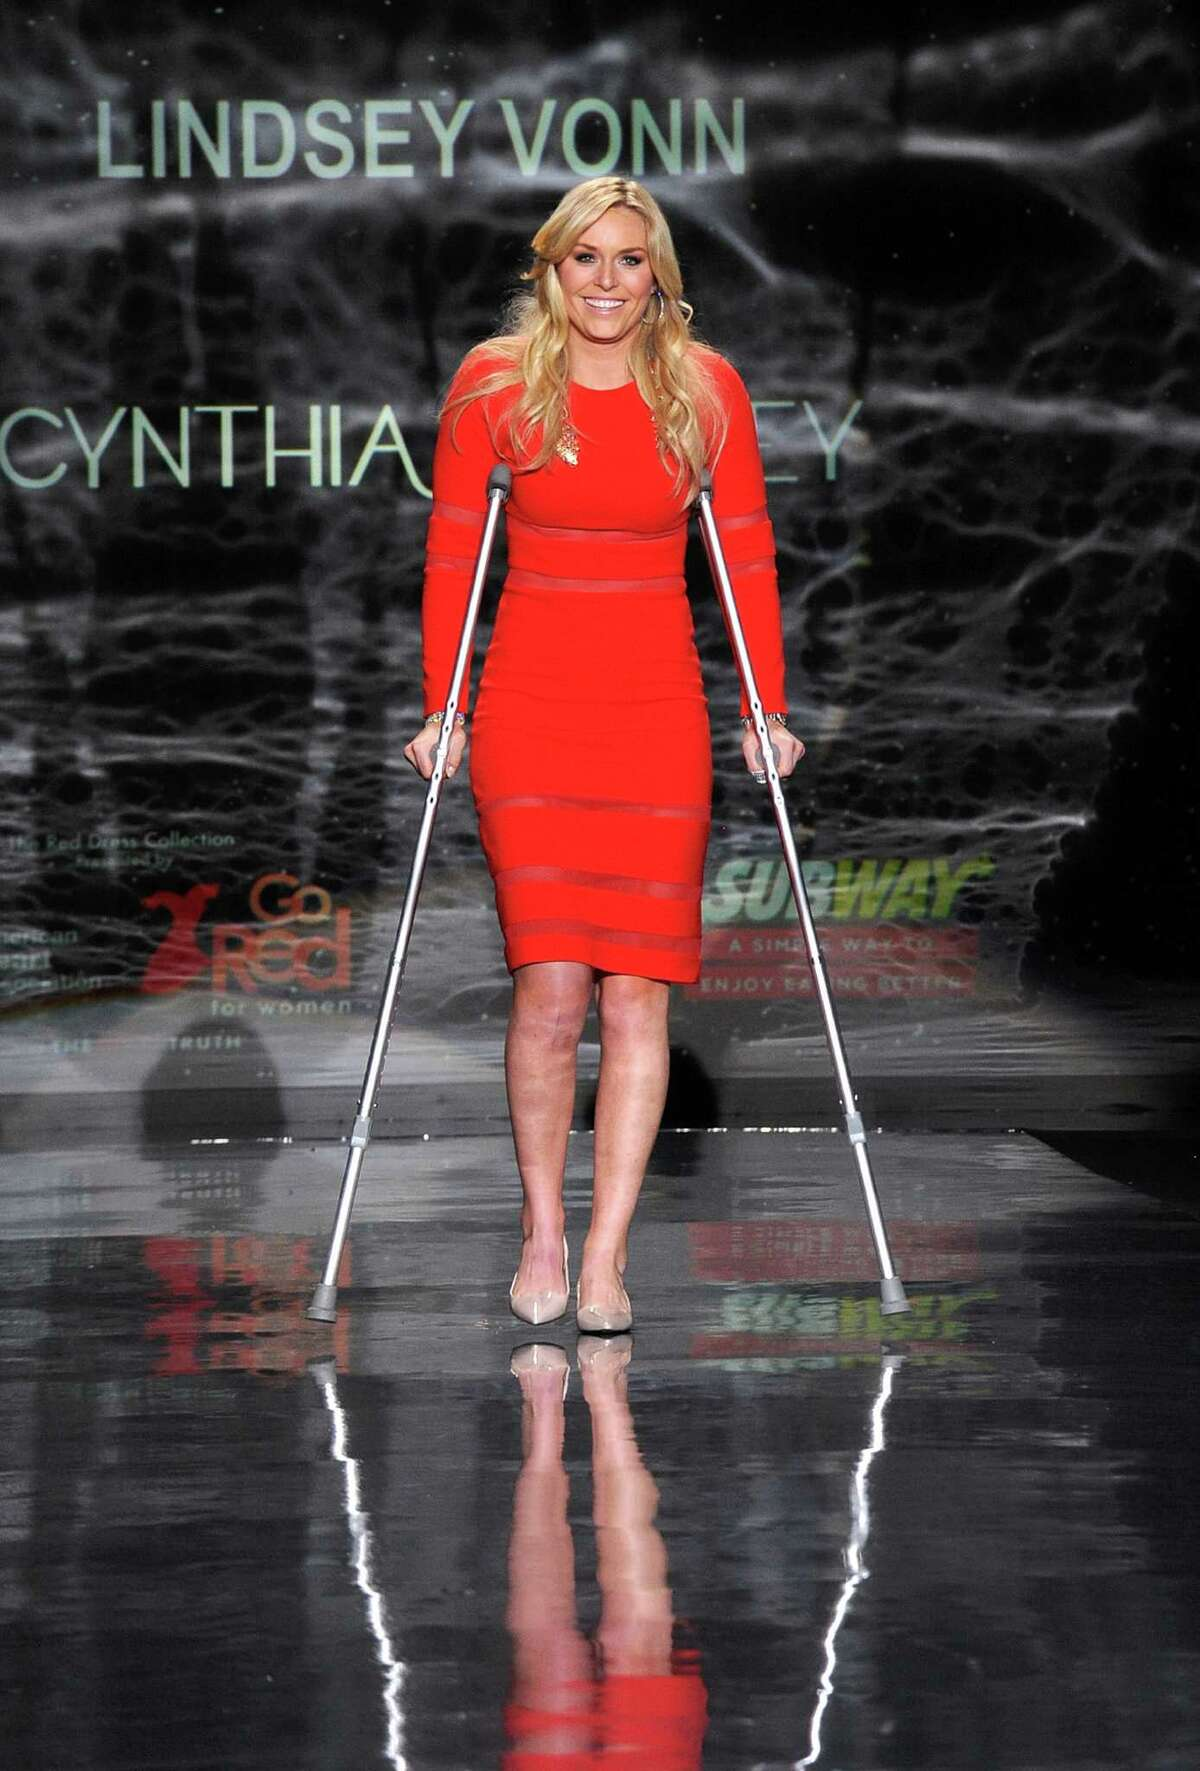 Lindsey Vonn works the runway Thursday during Fashion Week in New York.